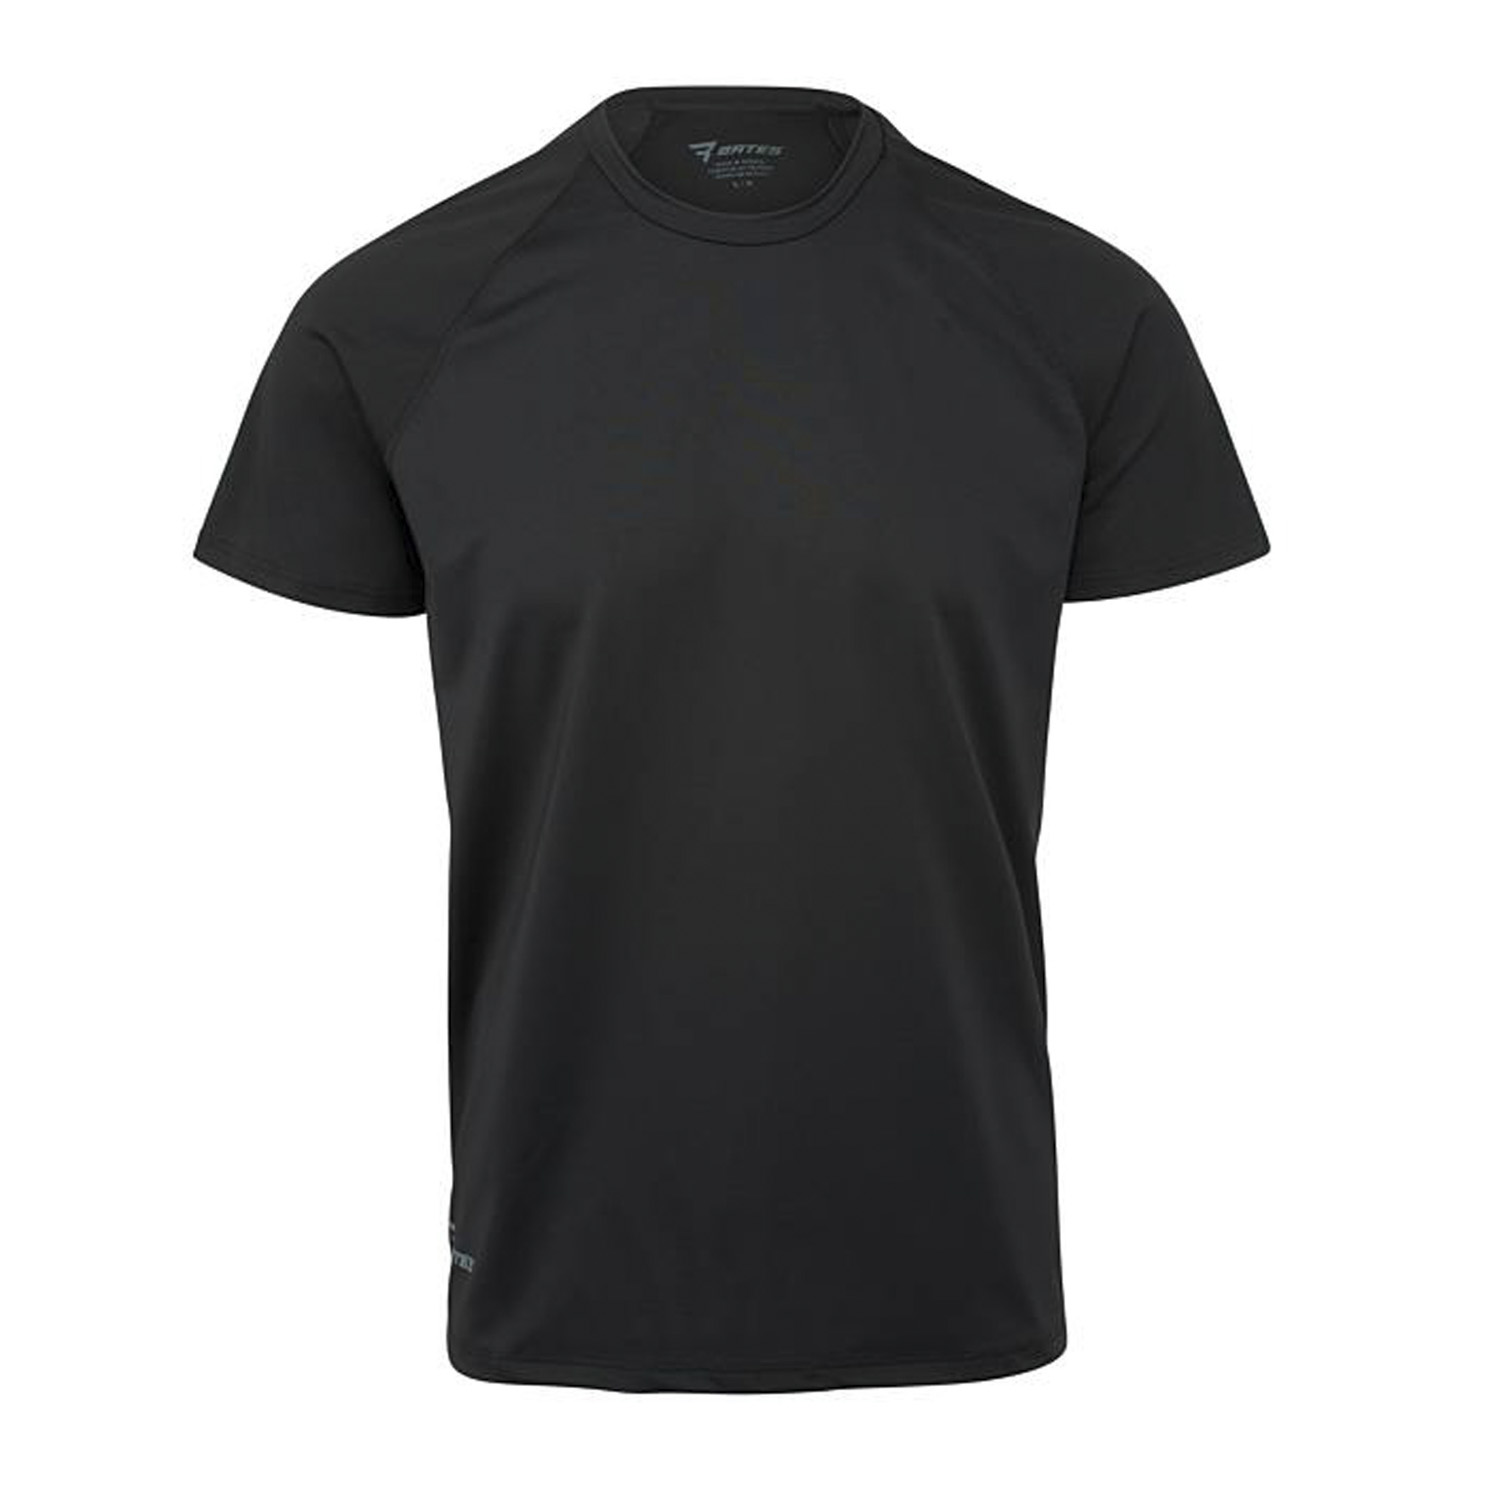 Bates Short Sleeve Baselayer Shirt